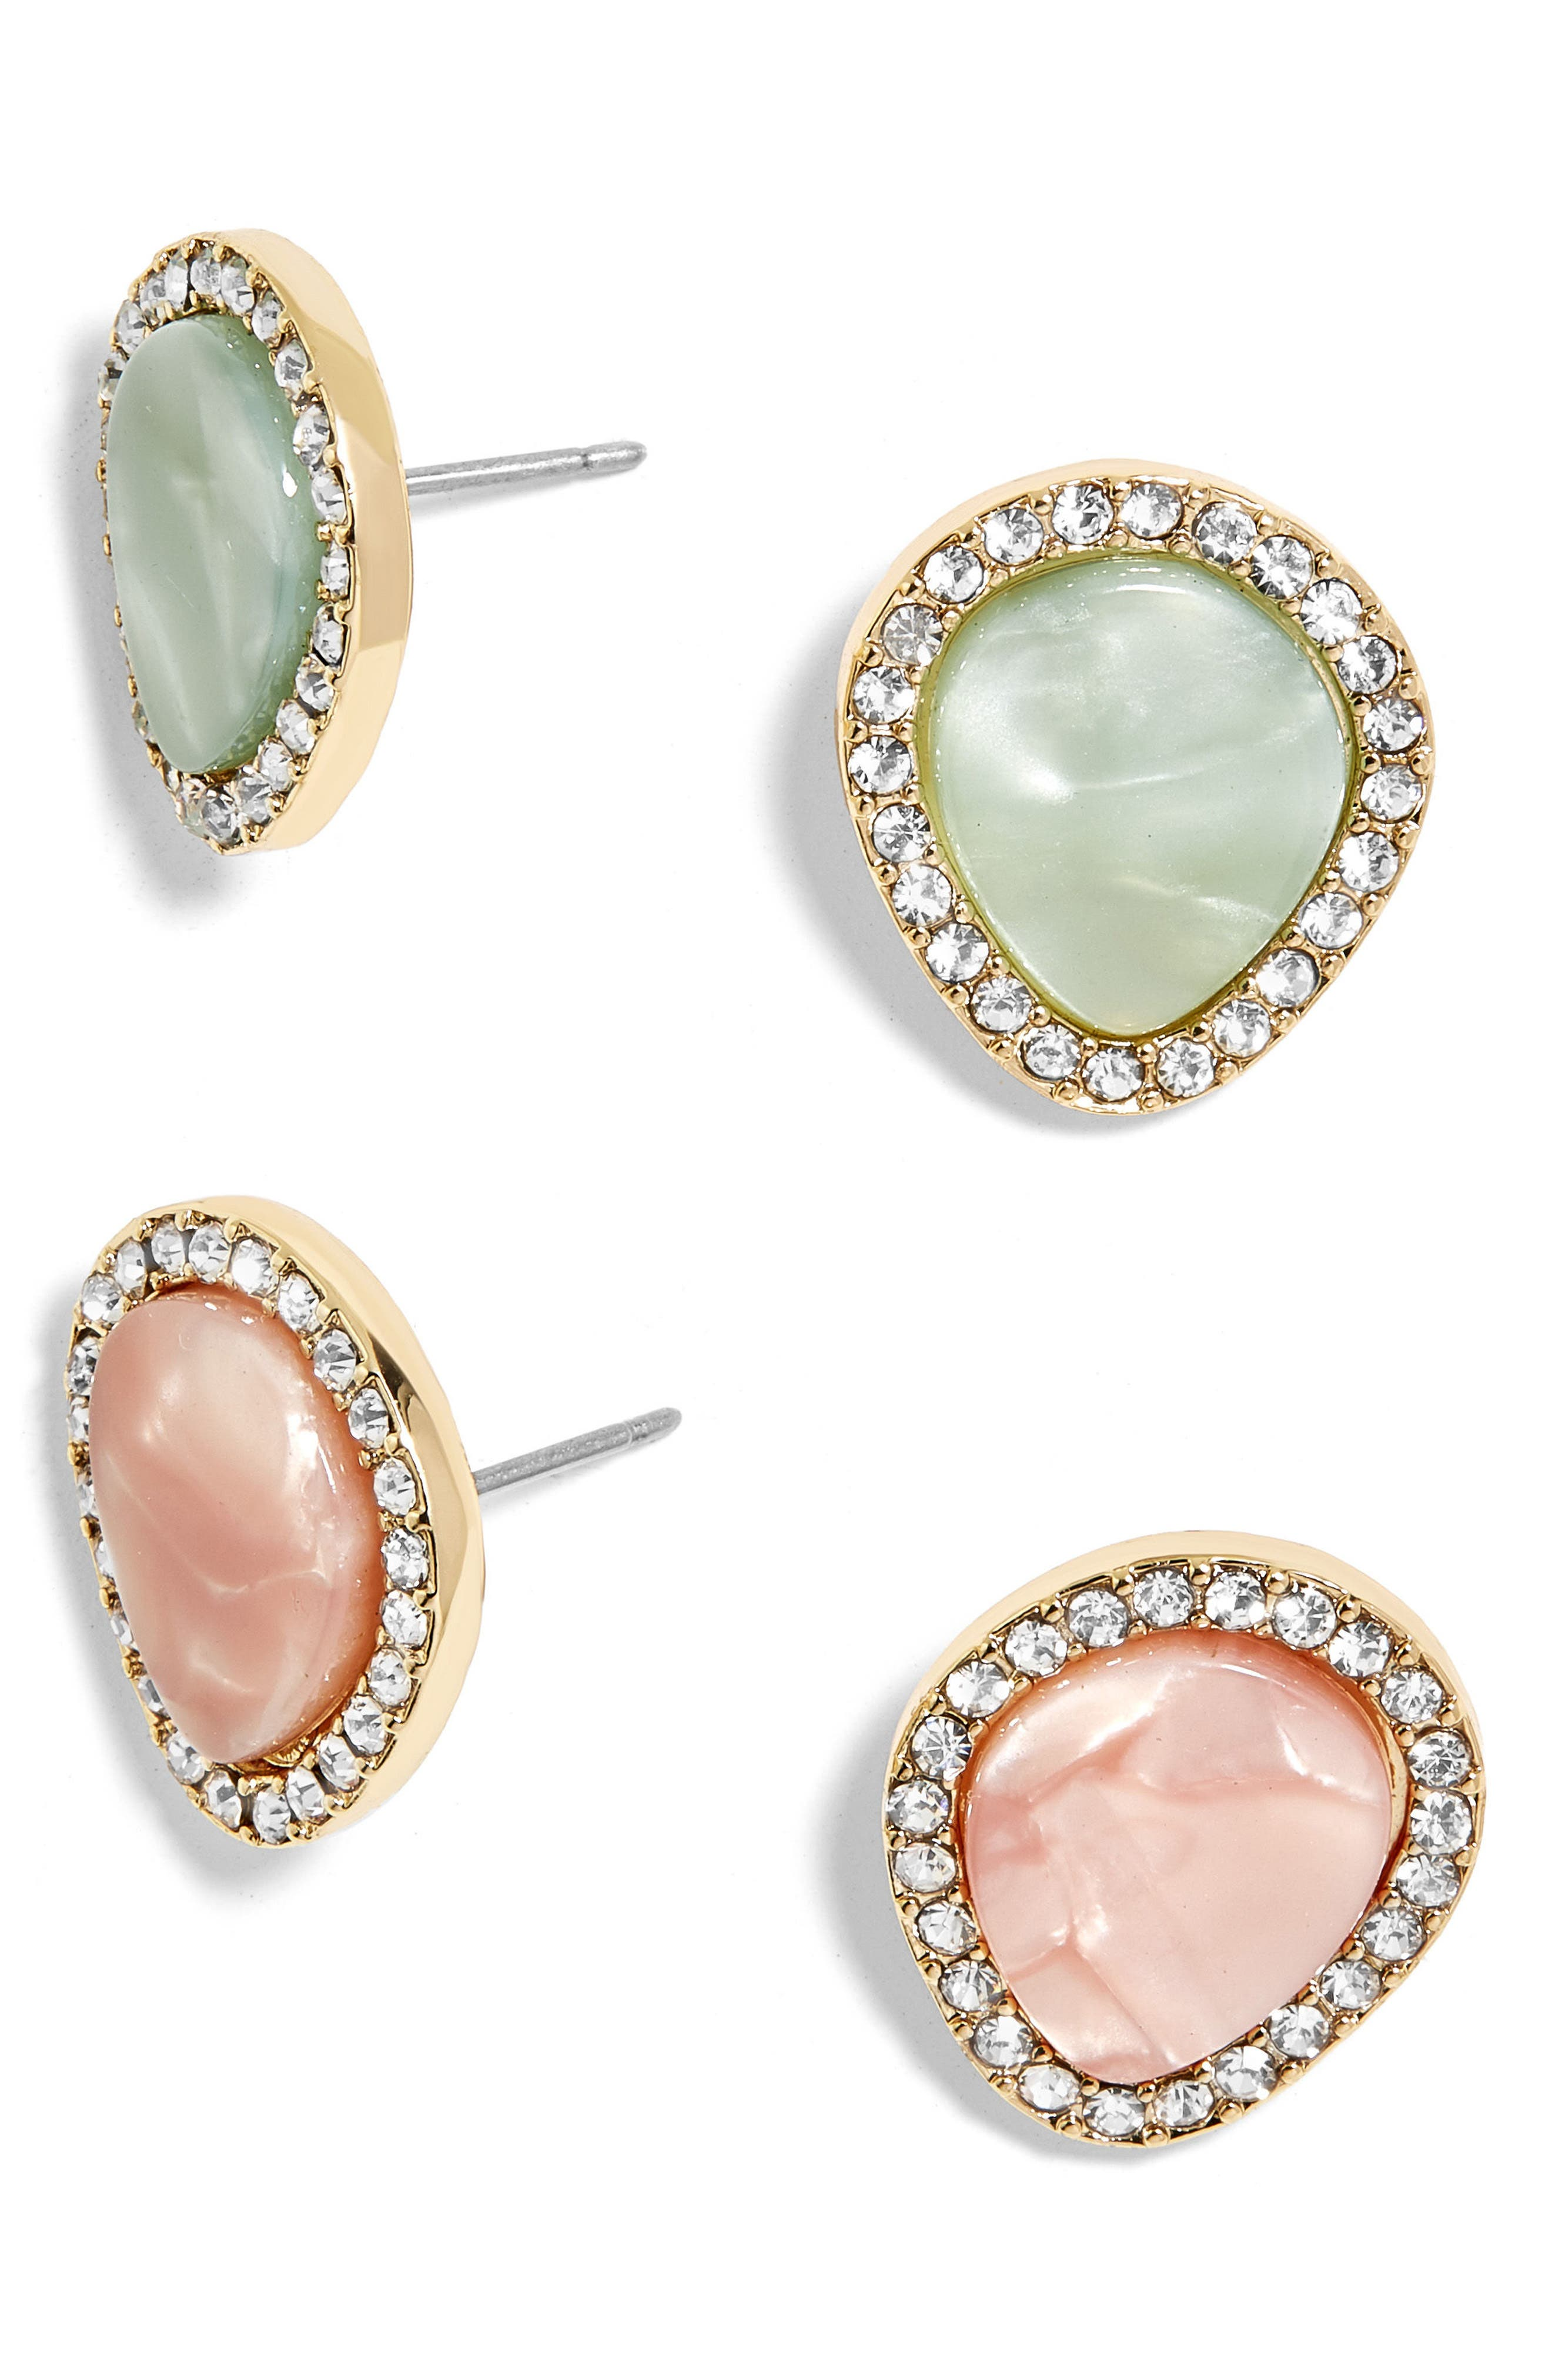 Set of 2 Crystal Encrusted Stud Earrings,                         Main,                         color, Blush/ Mint